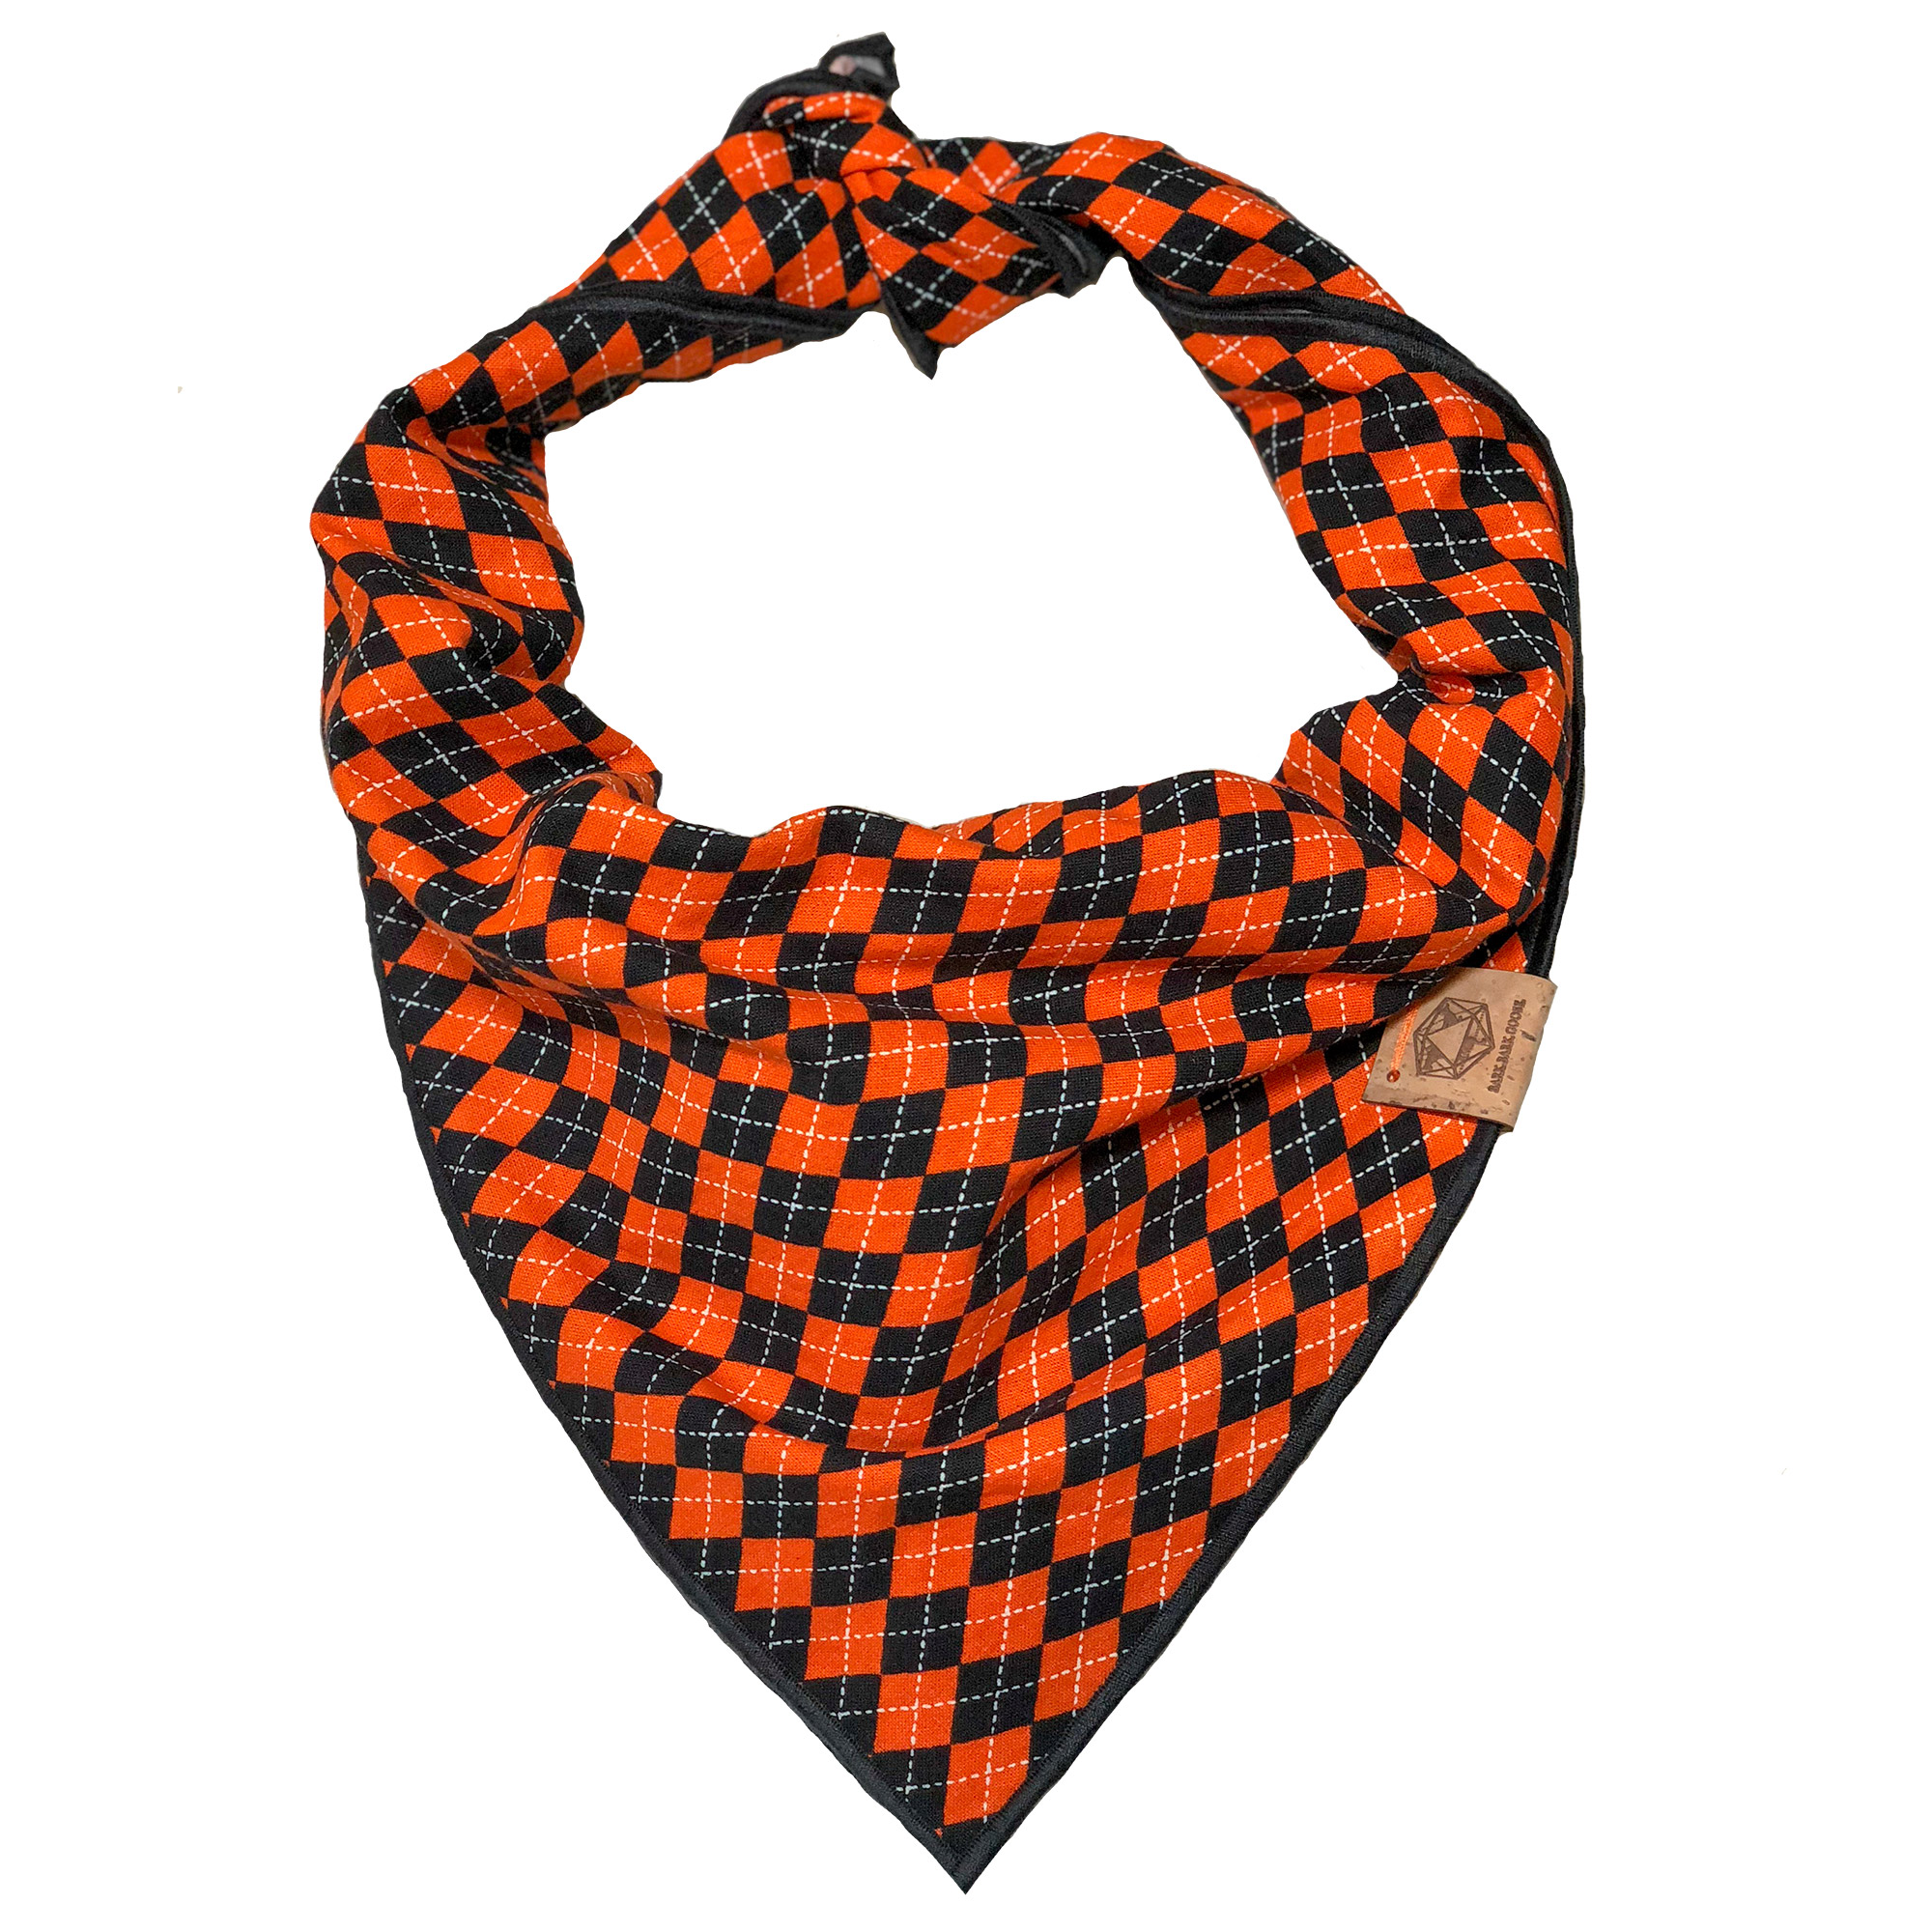 halloween-plaid-dog-bandana-orange-and-black.jpg